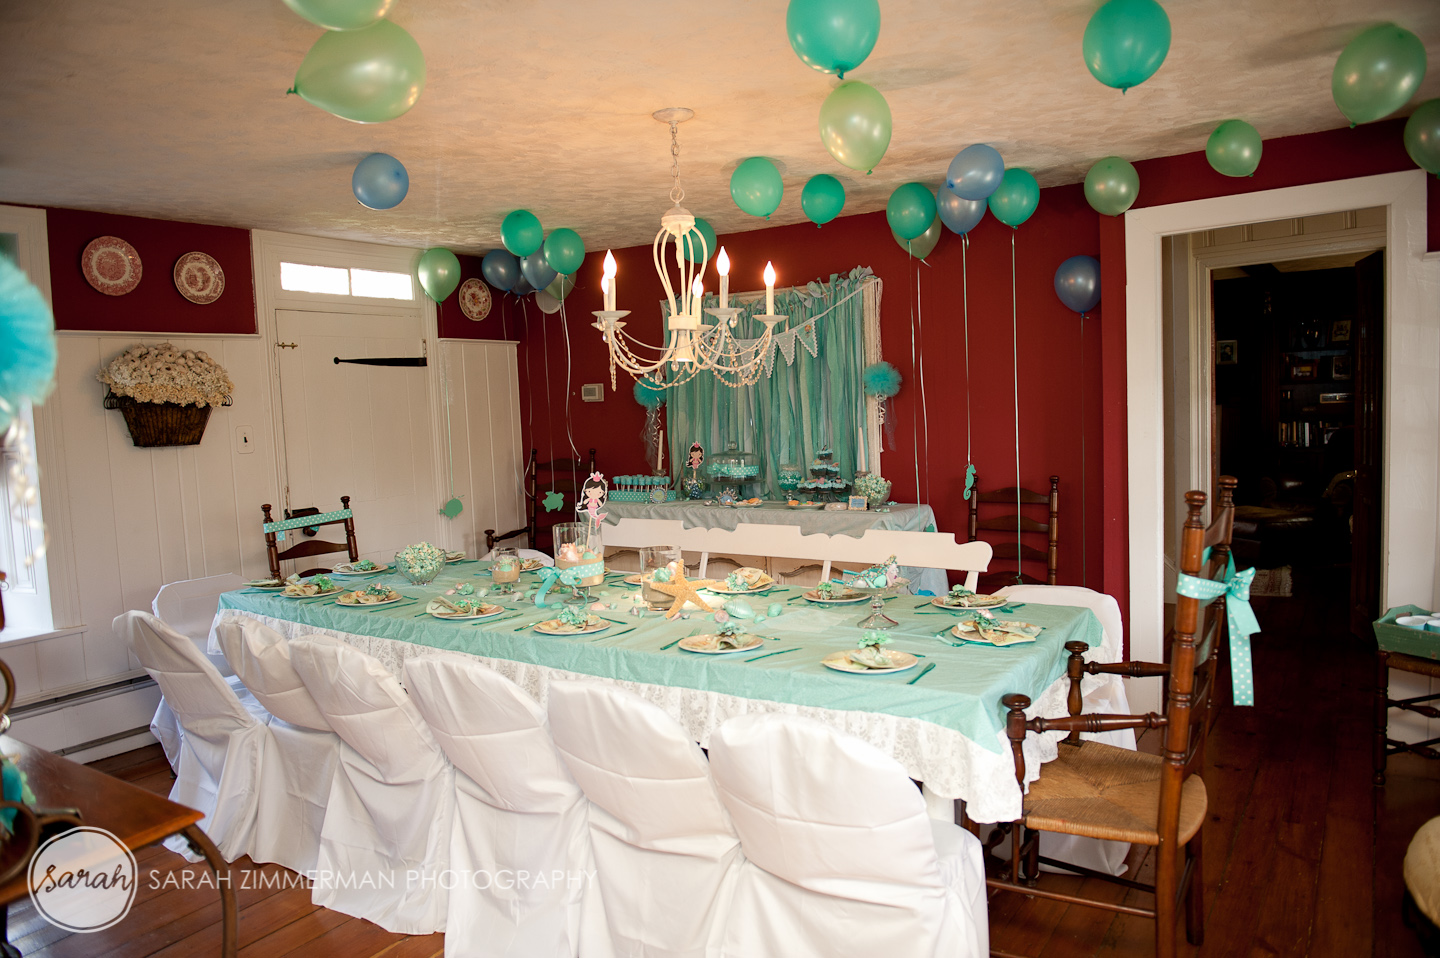 Pretti mini blog the magical mermaid party for Room decor ideas for husband birthday